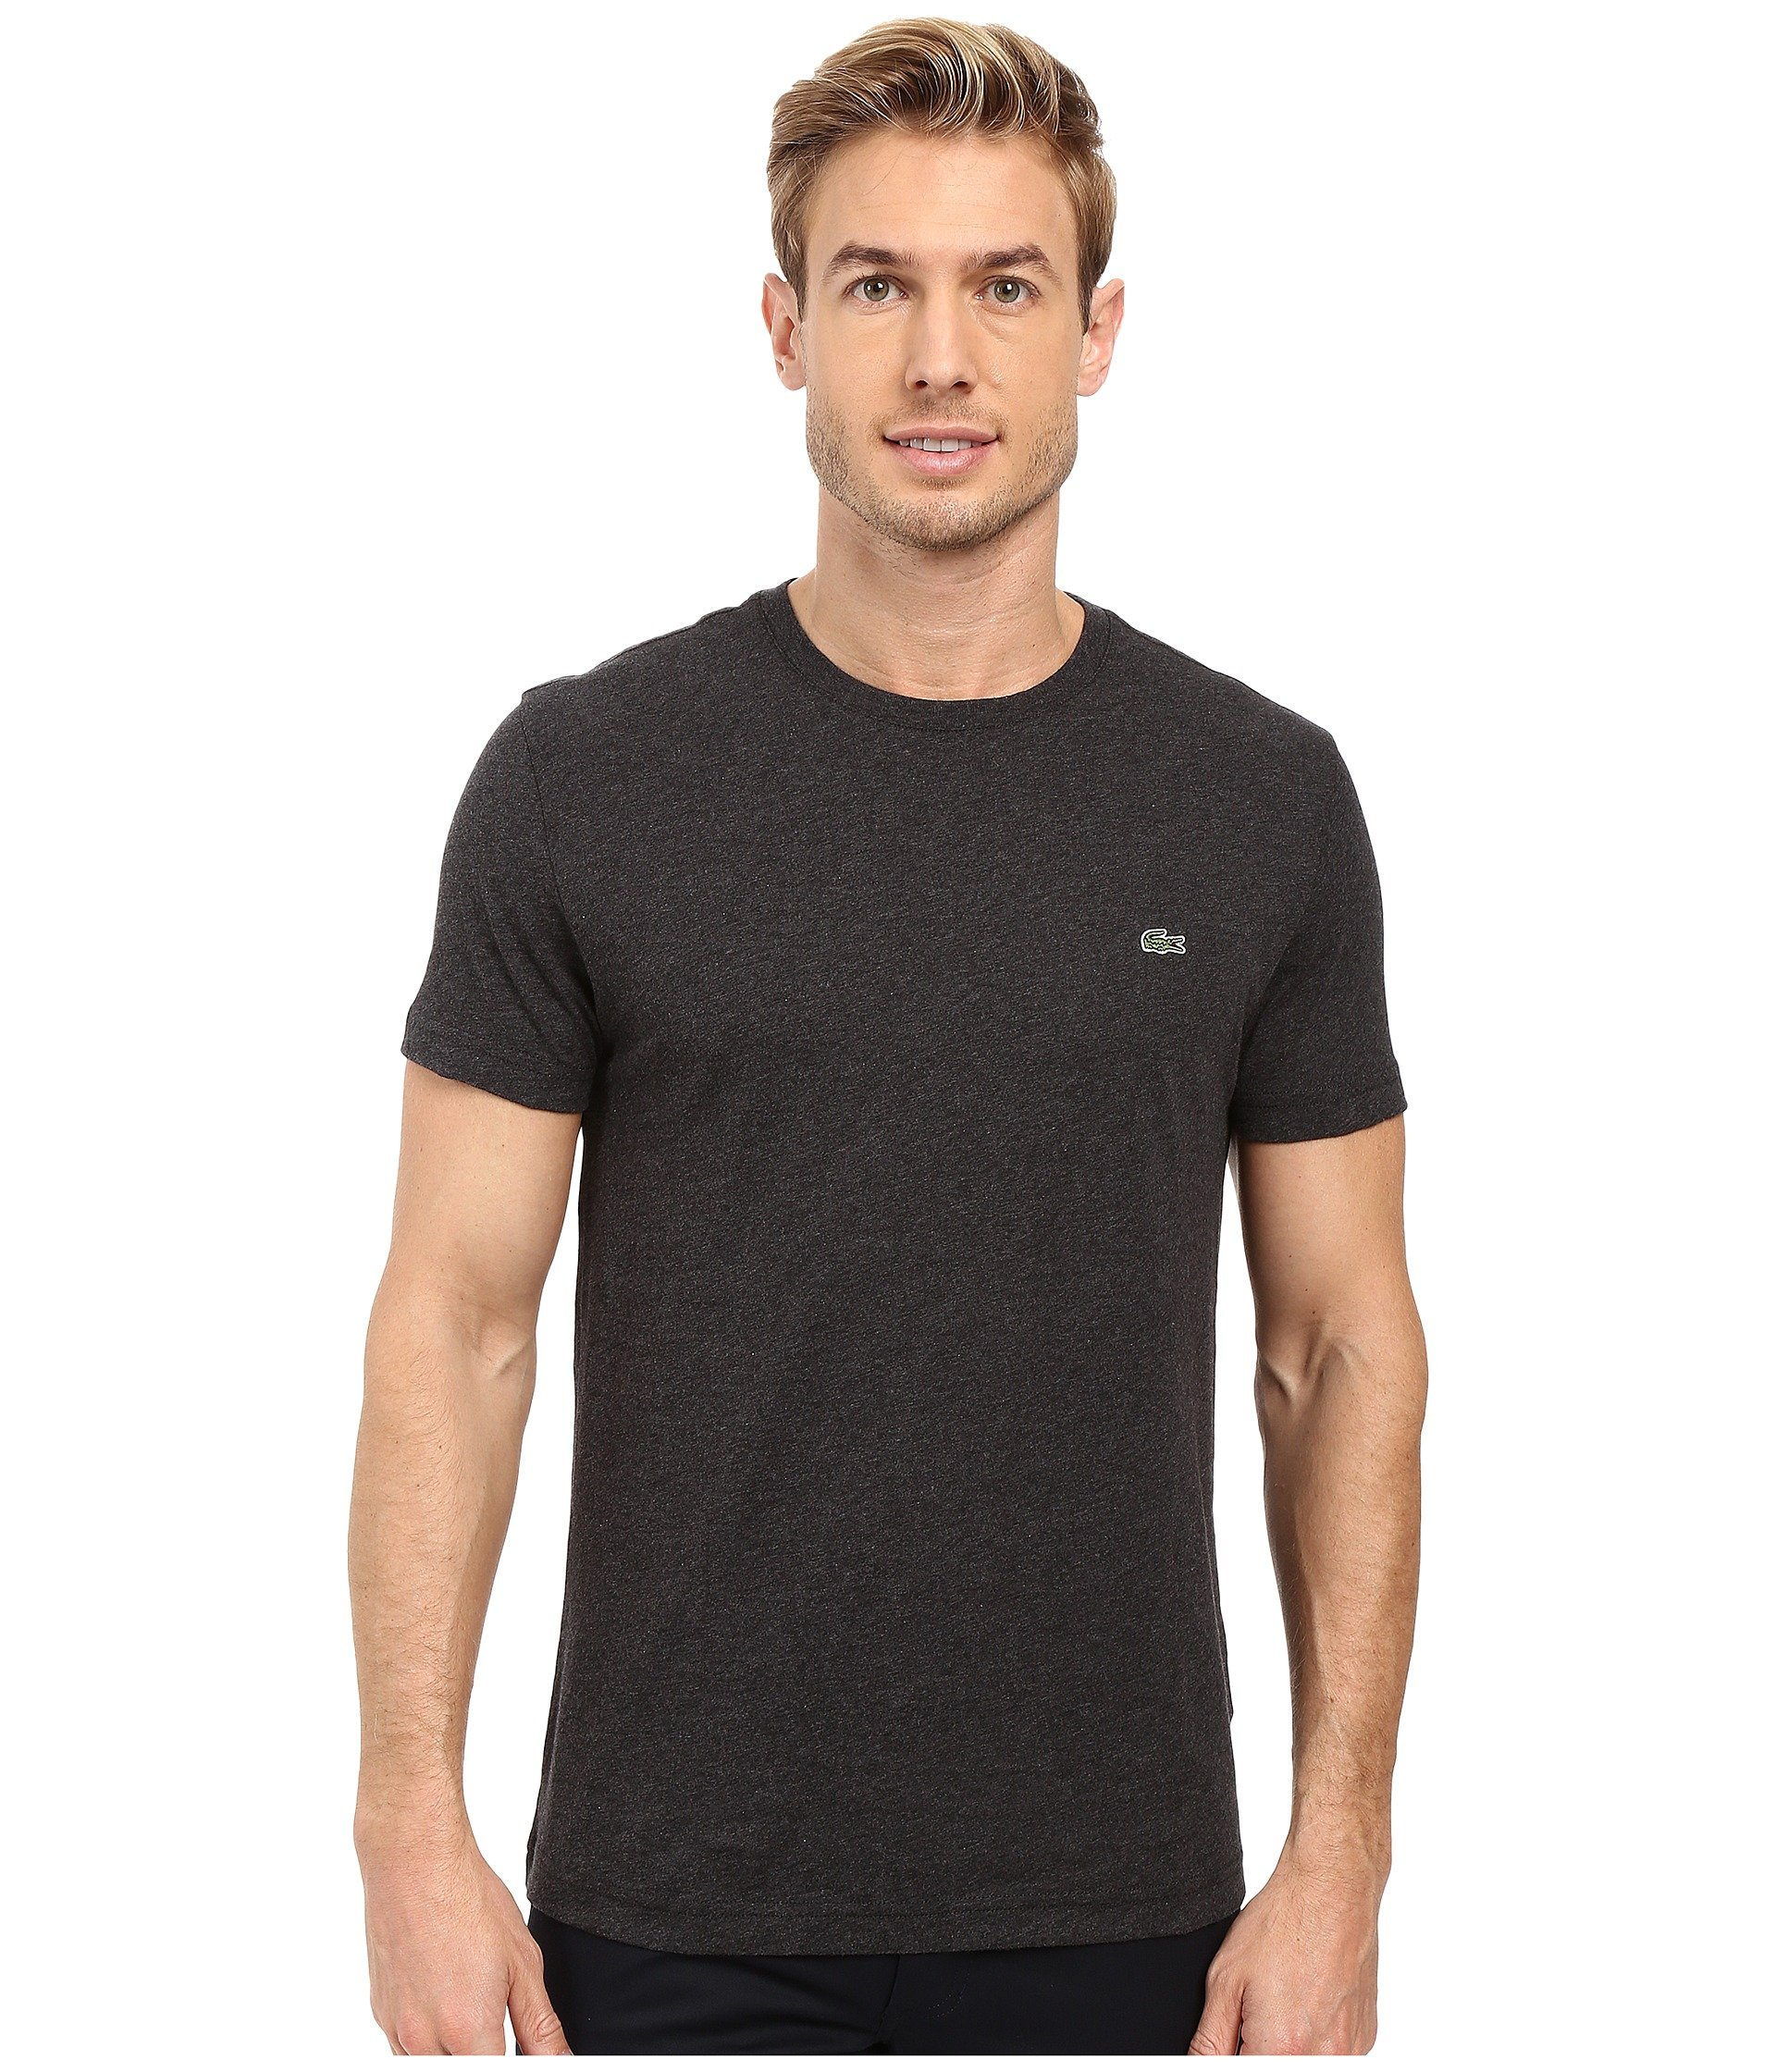 LACOSTE Short-Sleeve Pima Jersey Crewneck T-Shirt in Panther Black